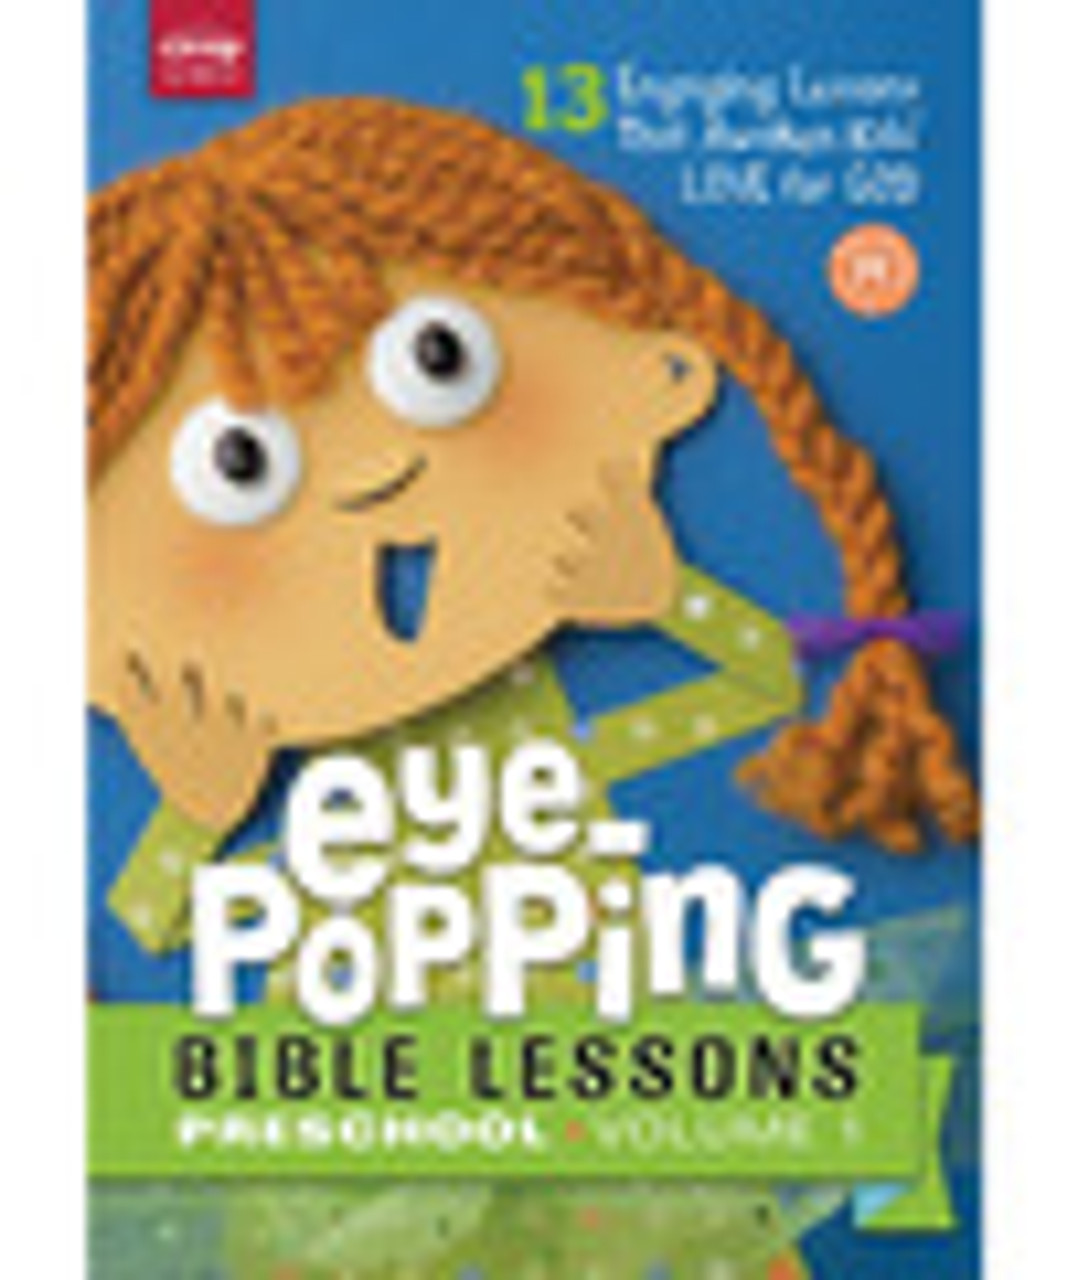 Eye Popping Bible Lessons Preschool Vol 1